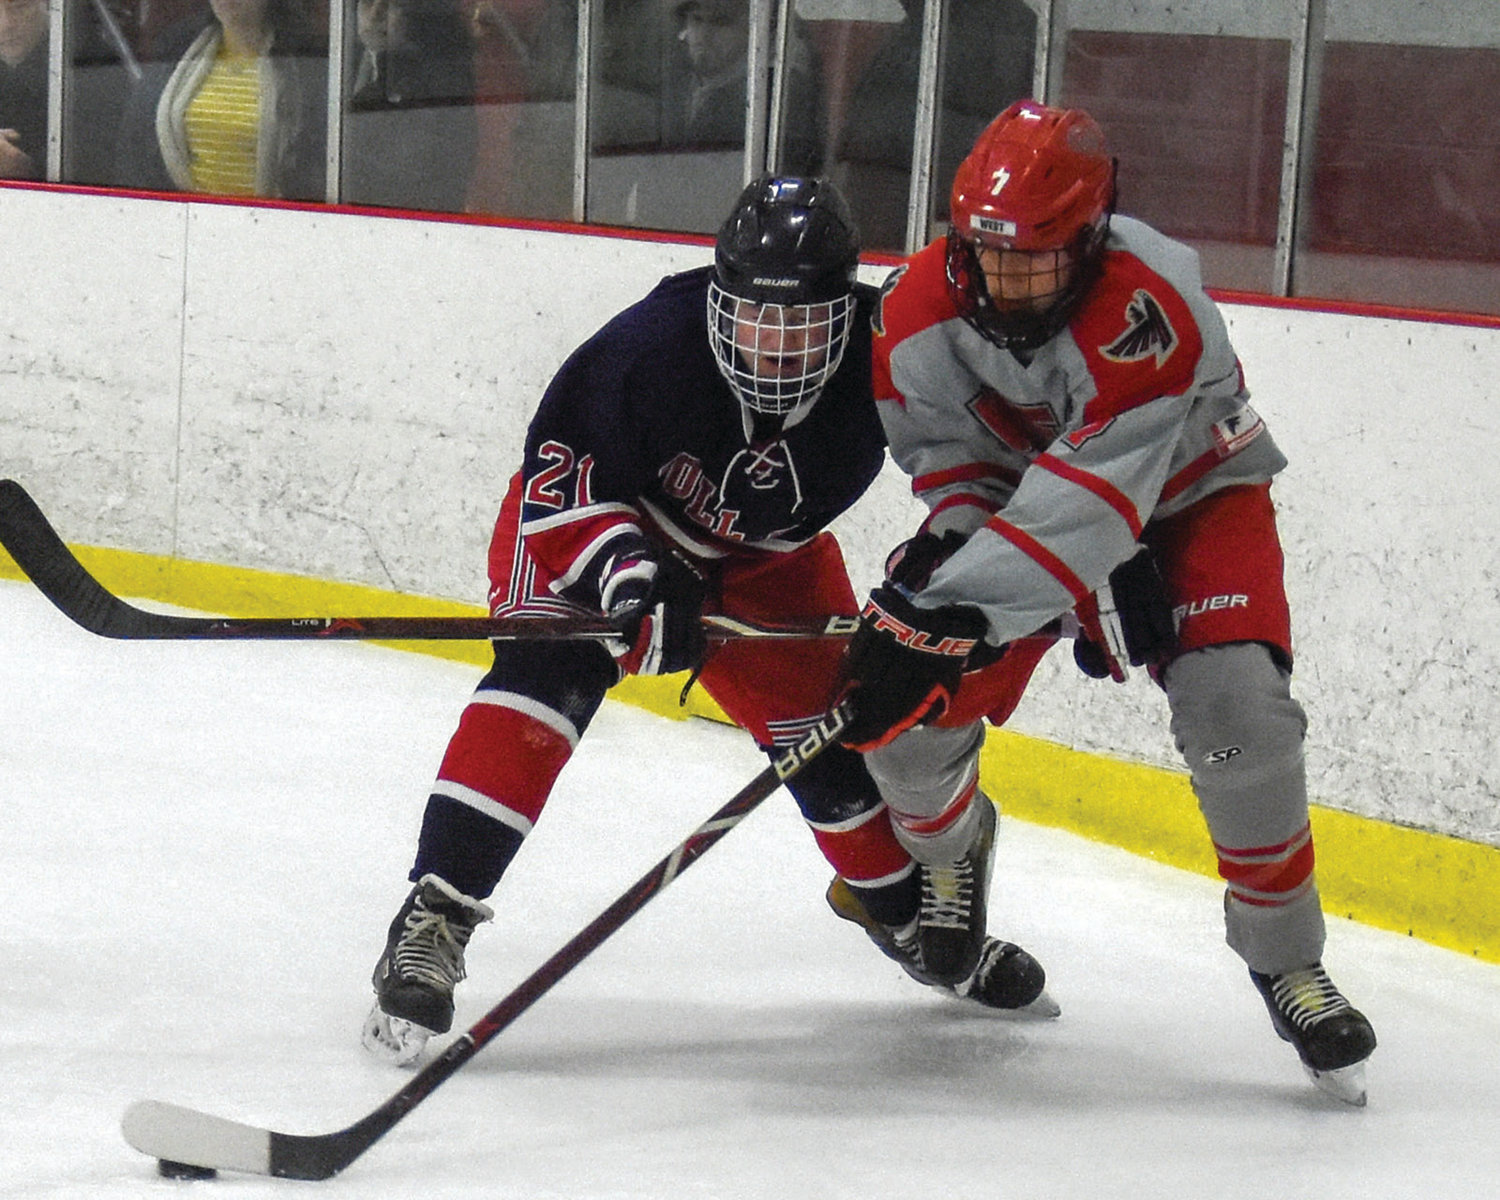 DOING BATTLE: Cranston West's Joshua Zambarano battles a Toll Gate player for possession during their matchup last week in Cranston. The Falcons won 7-4.